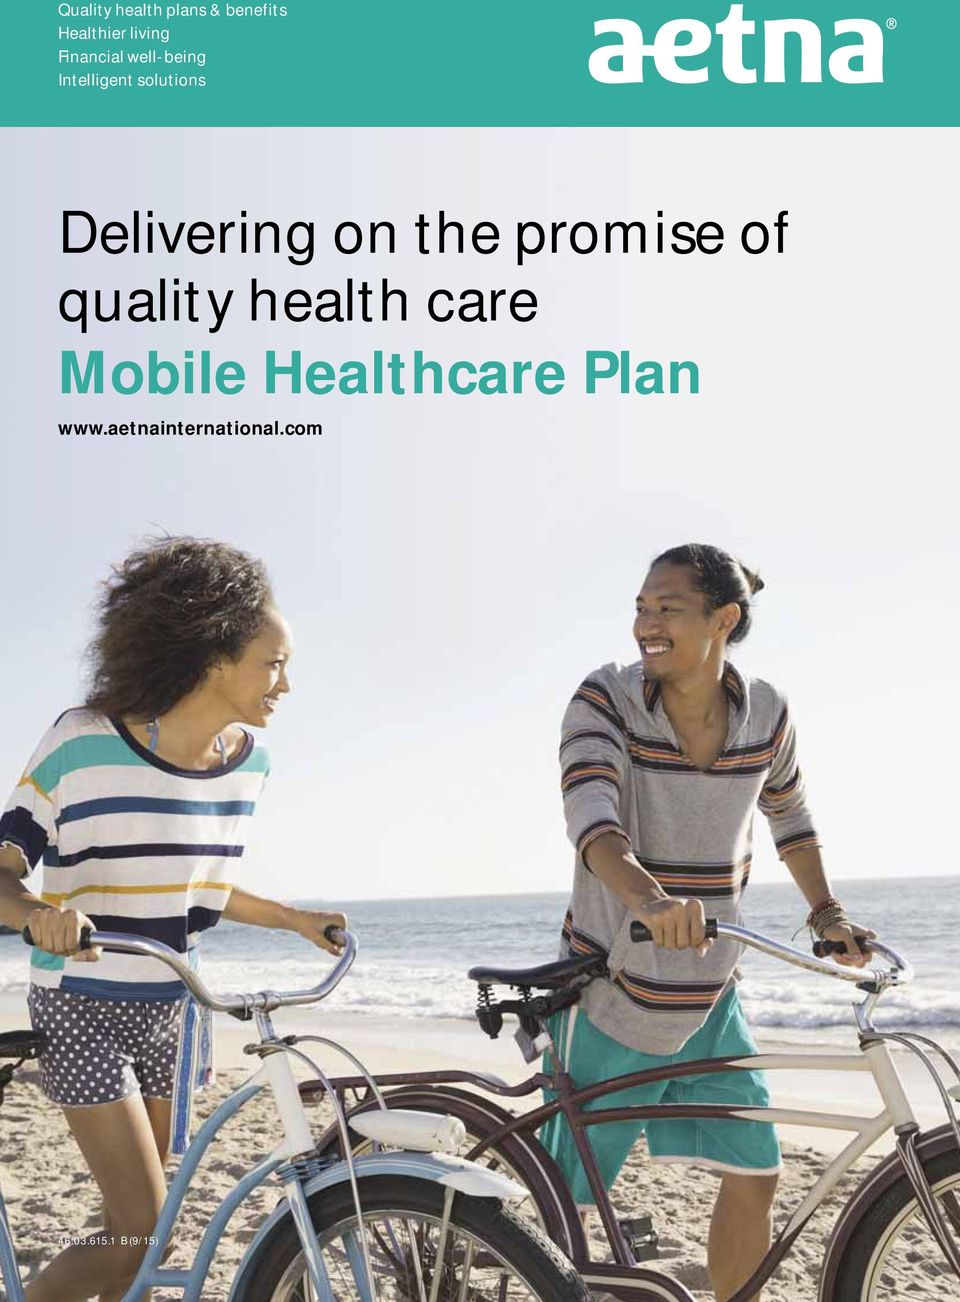 Delivering on the promise of quality health care